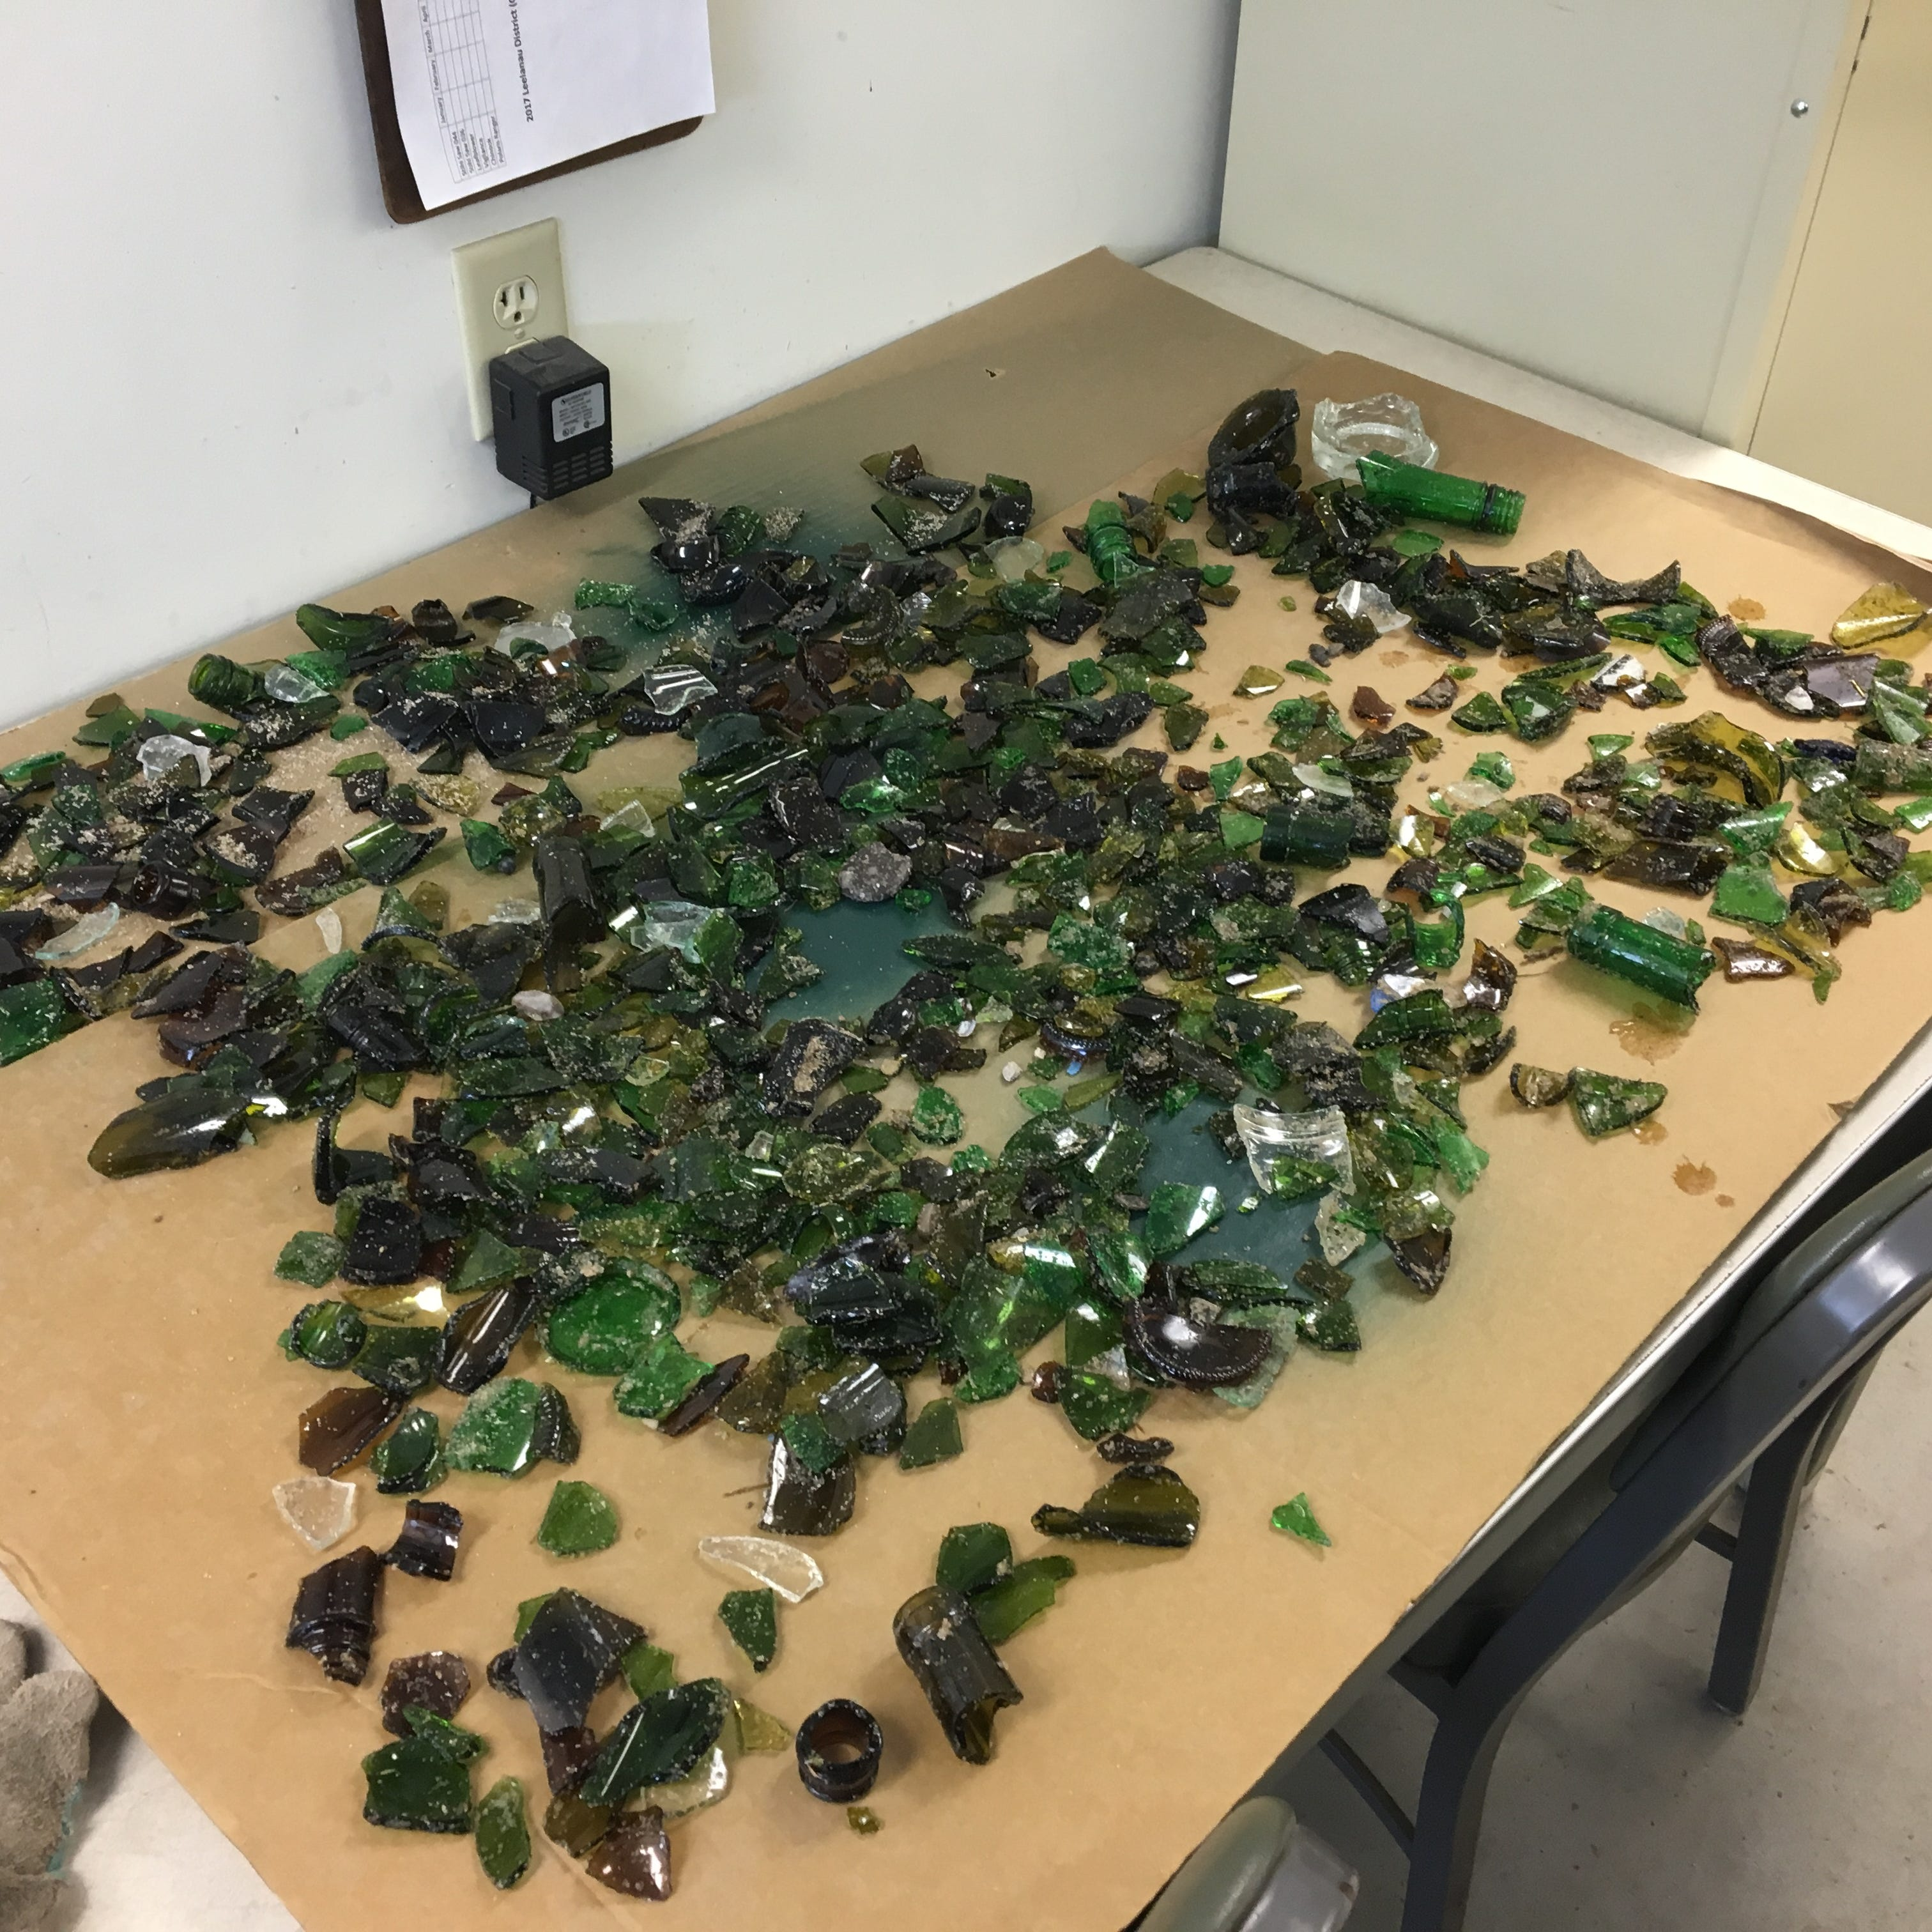 Thousands of glass shards strewn at Sleeping Bear Dunes